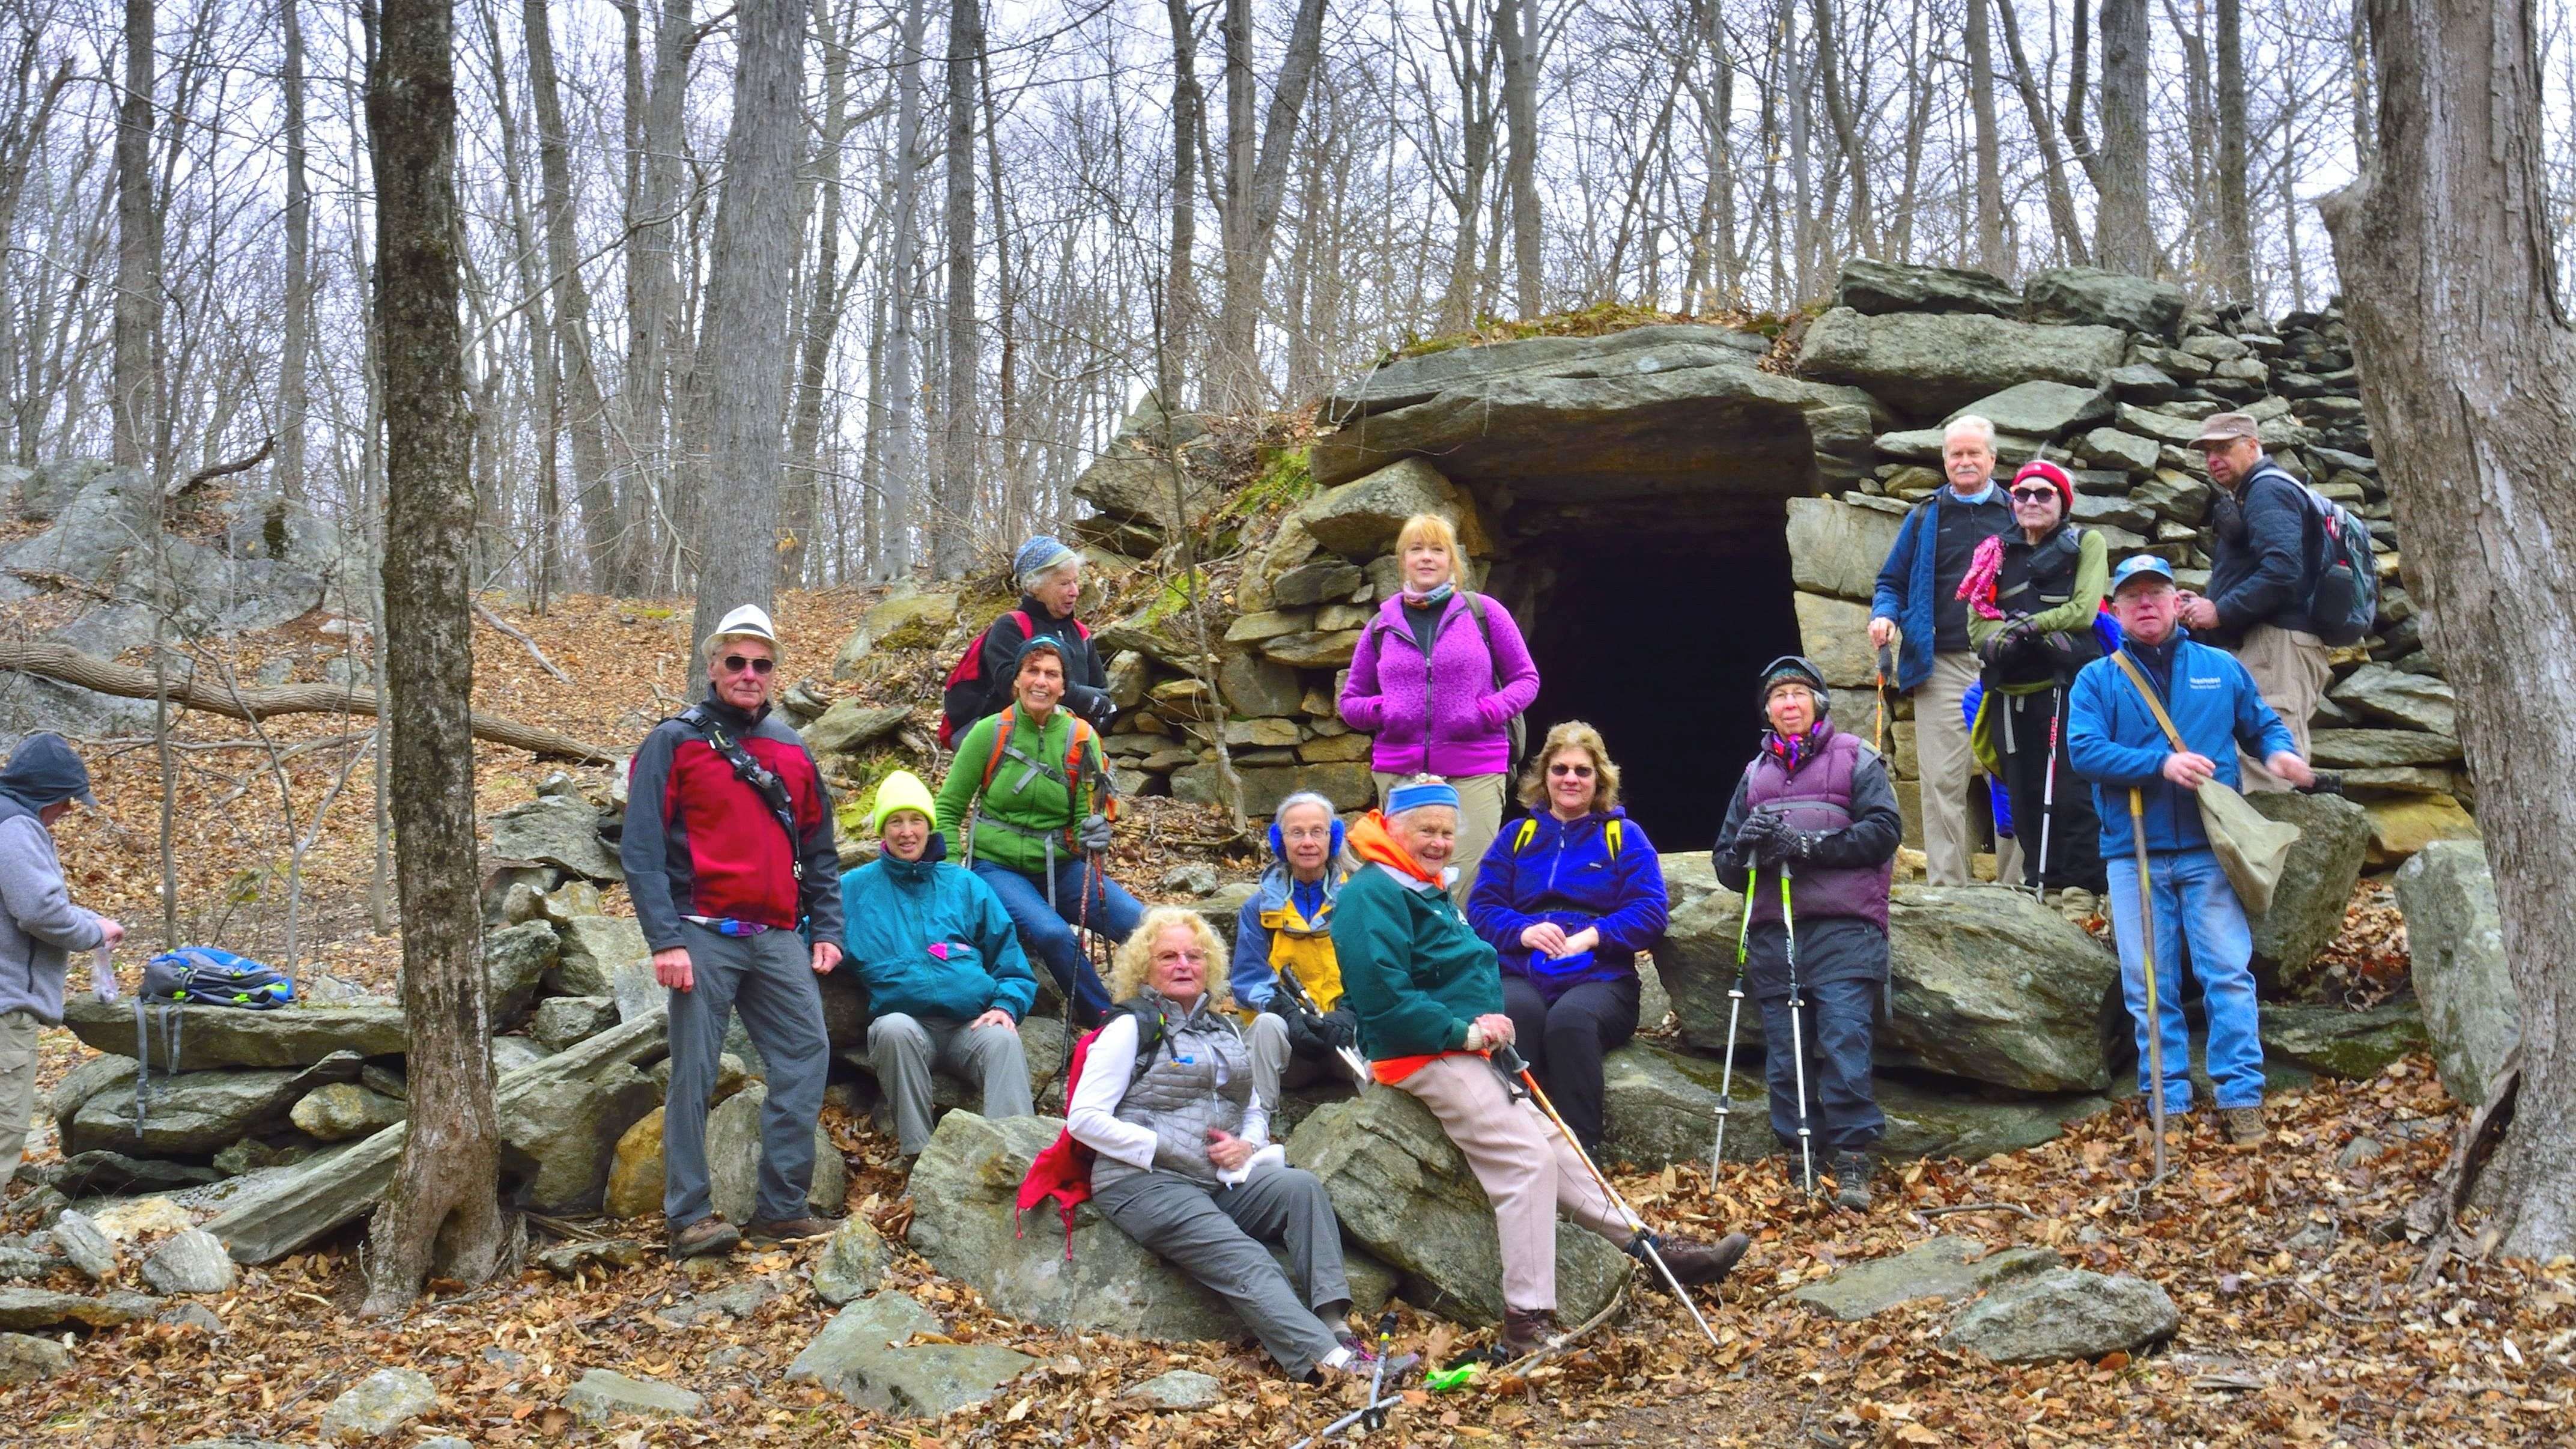 Mid-Hudson ADK - Outdoors Recreation & Conservation